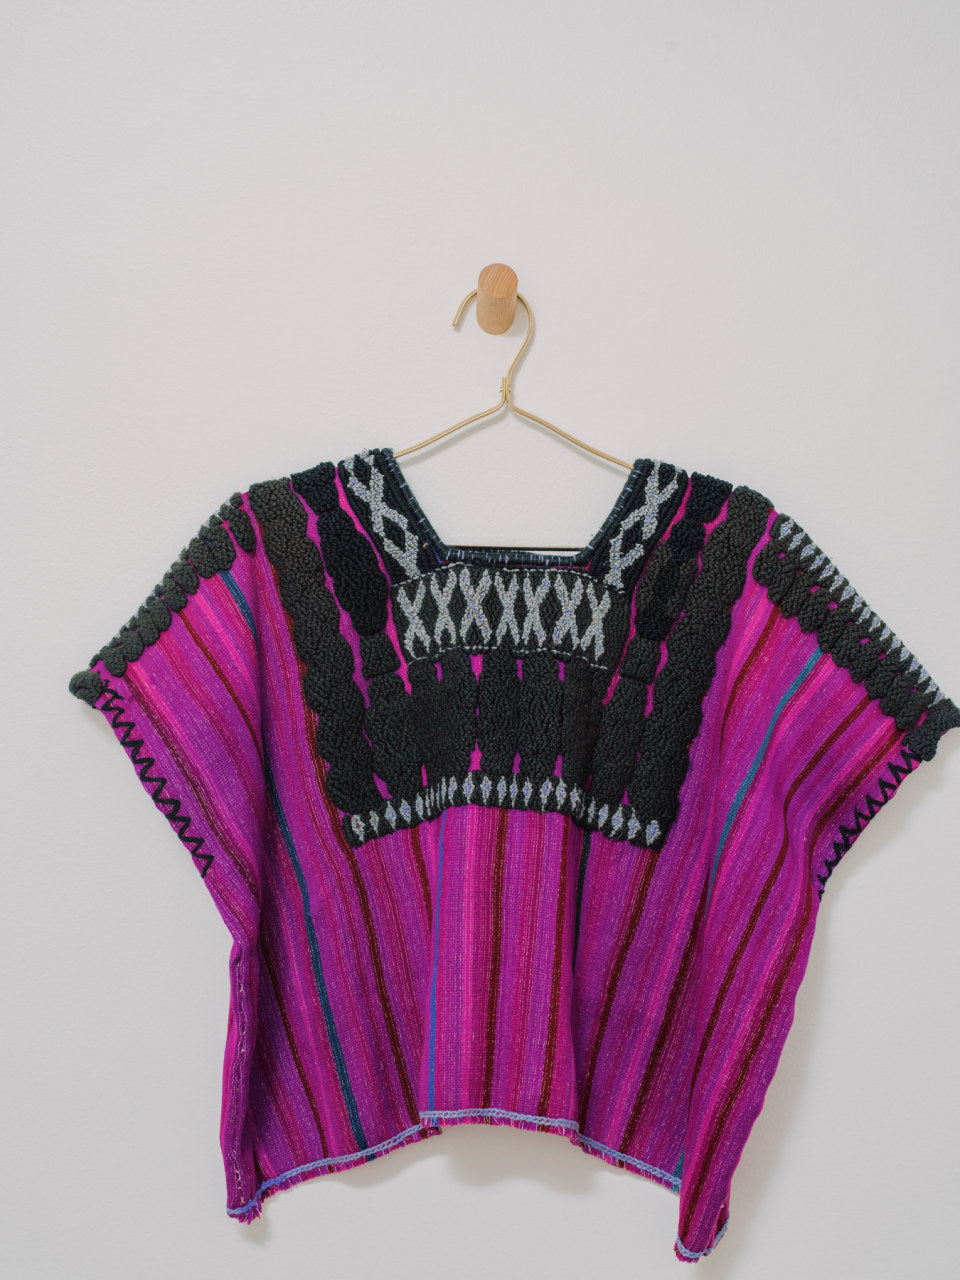 Huipil Chenalho - Handmade, Embroidered, Vintage Mexican Women Top - Chokolita